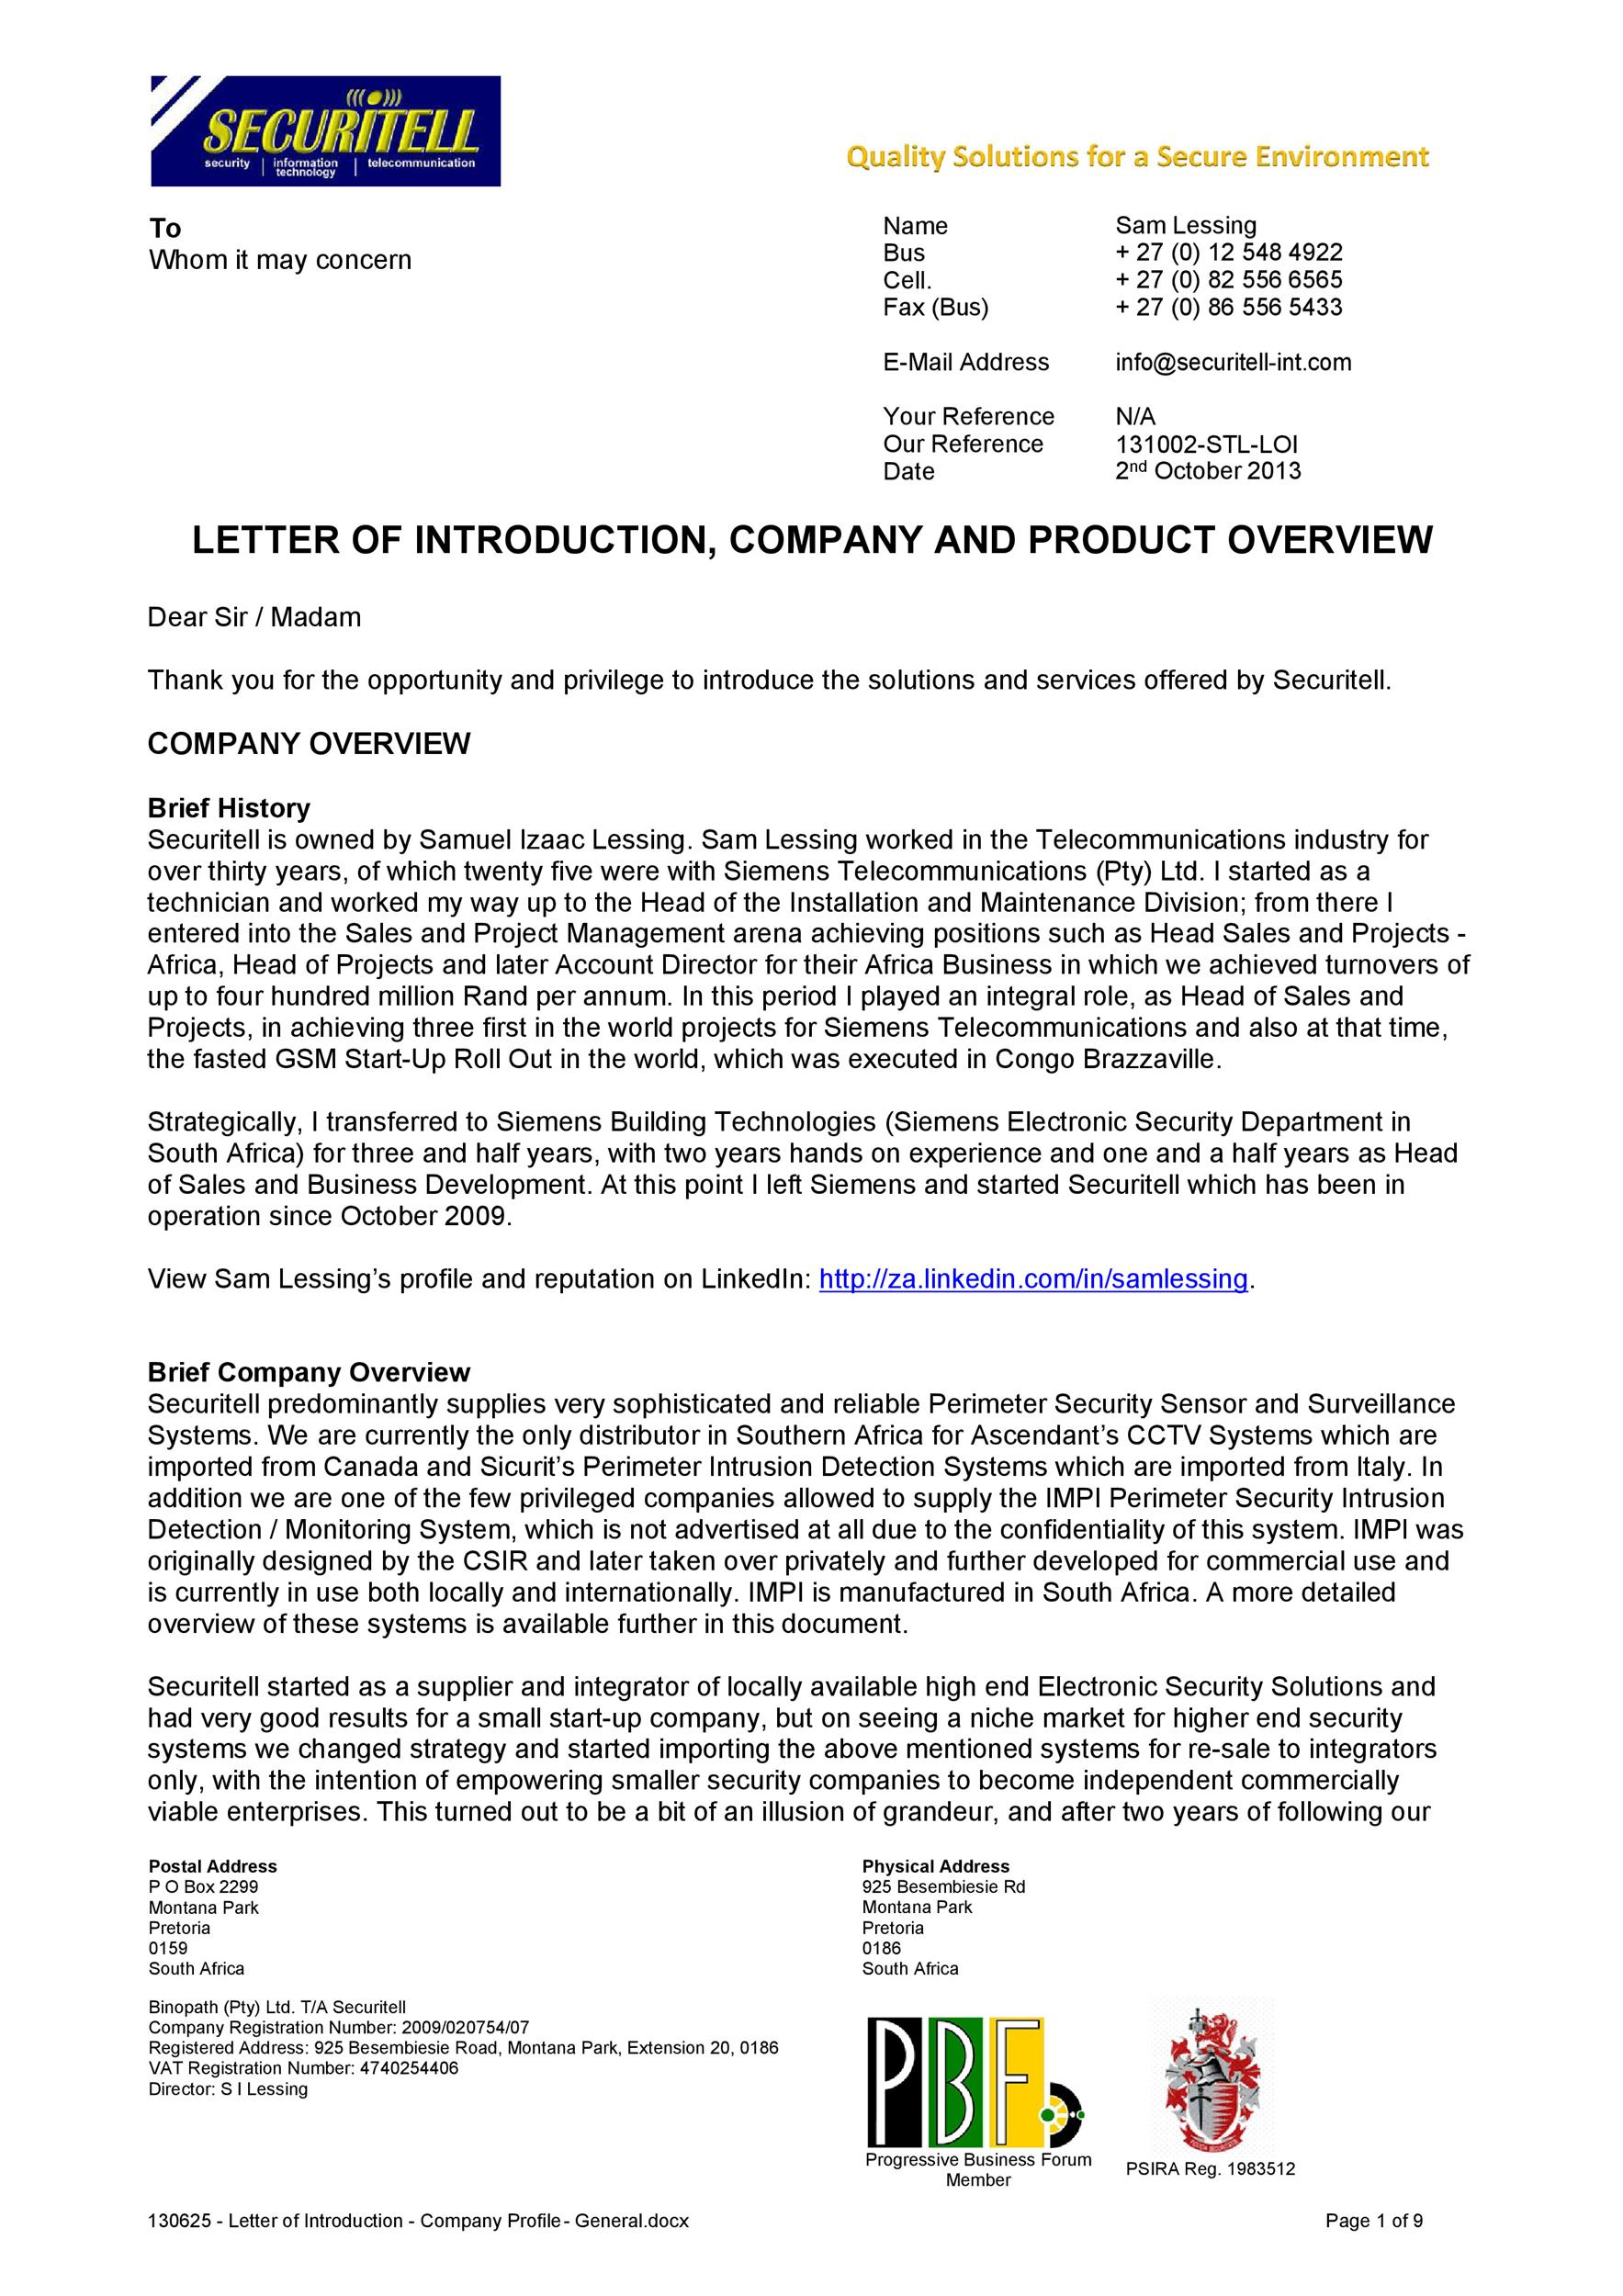 Free business introduction letter 02